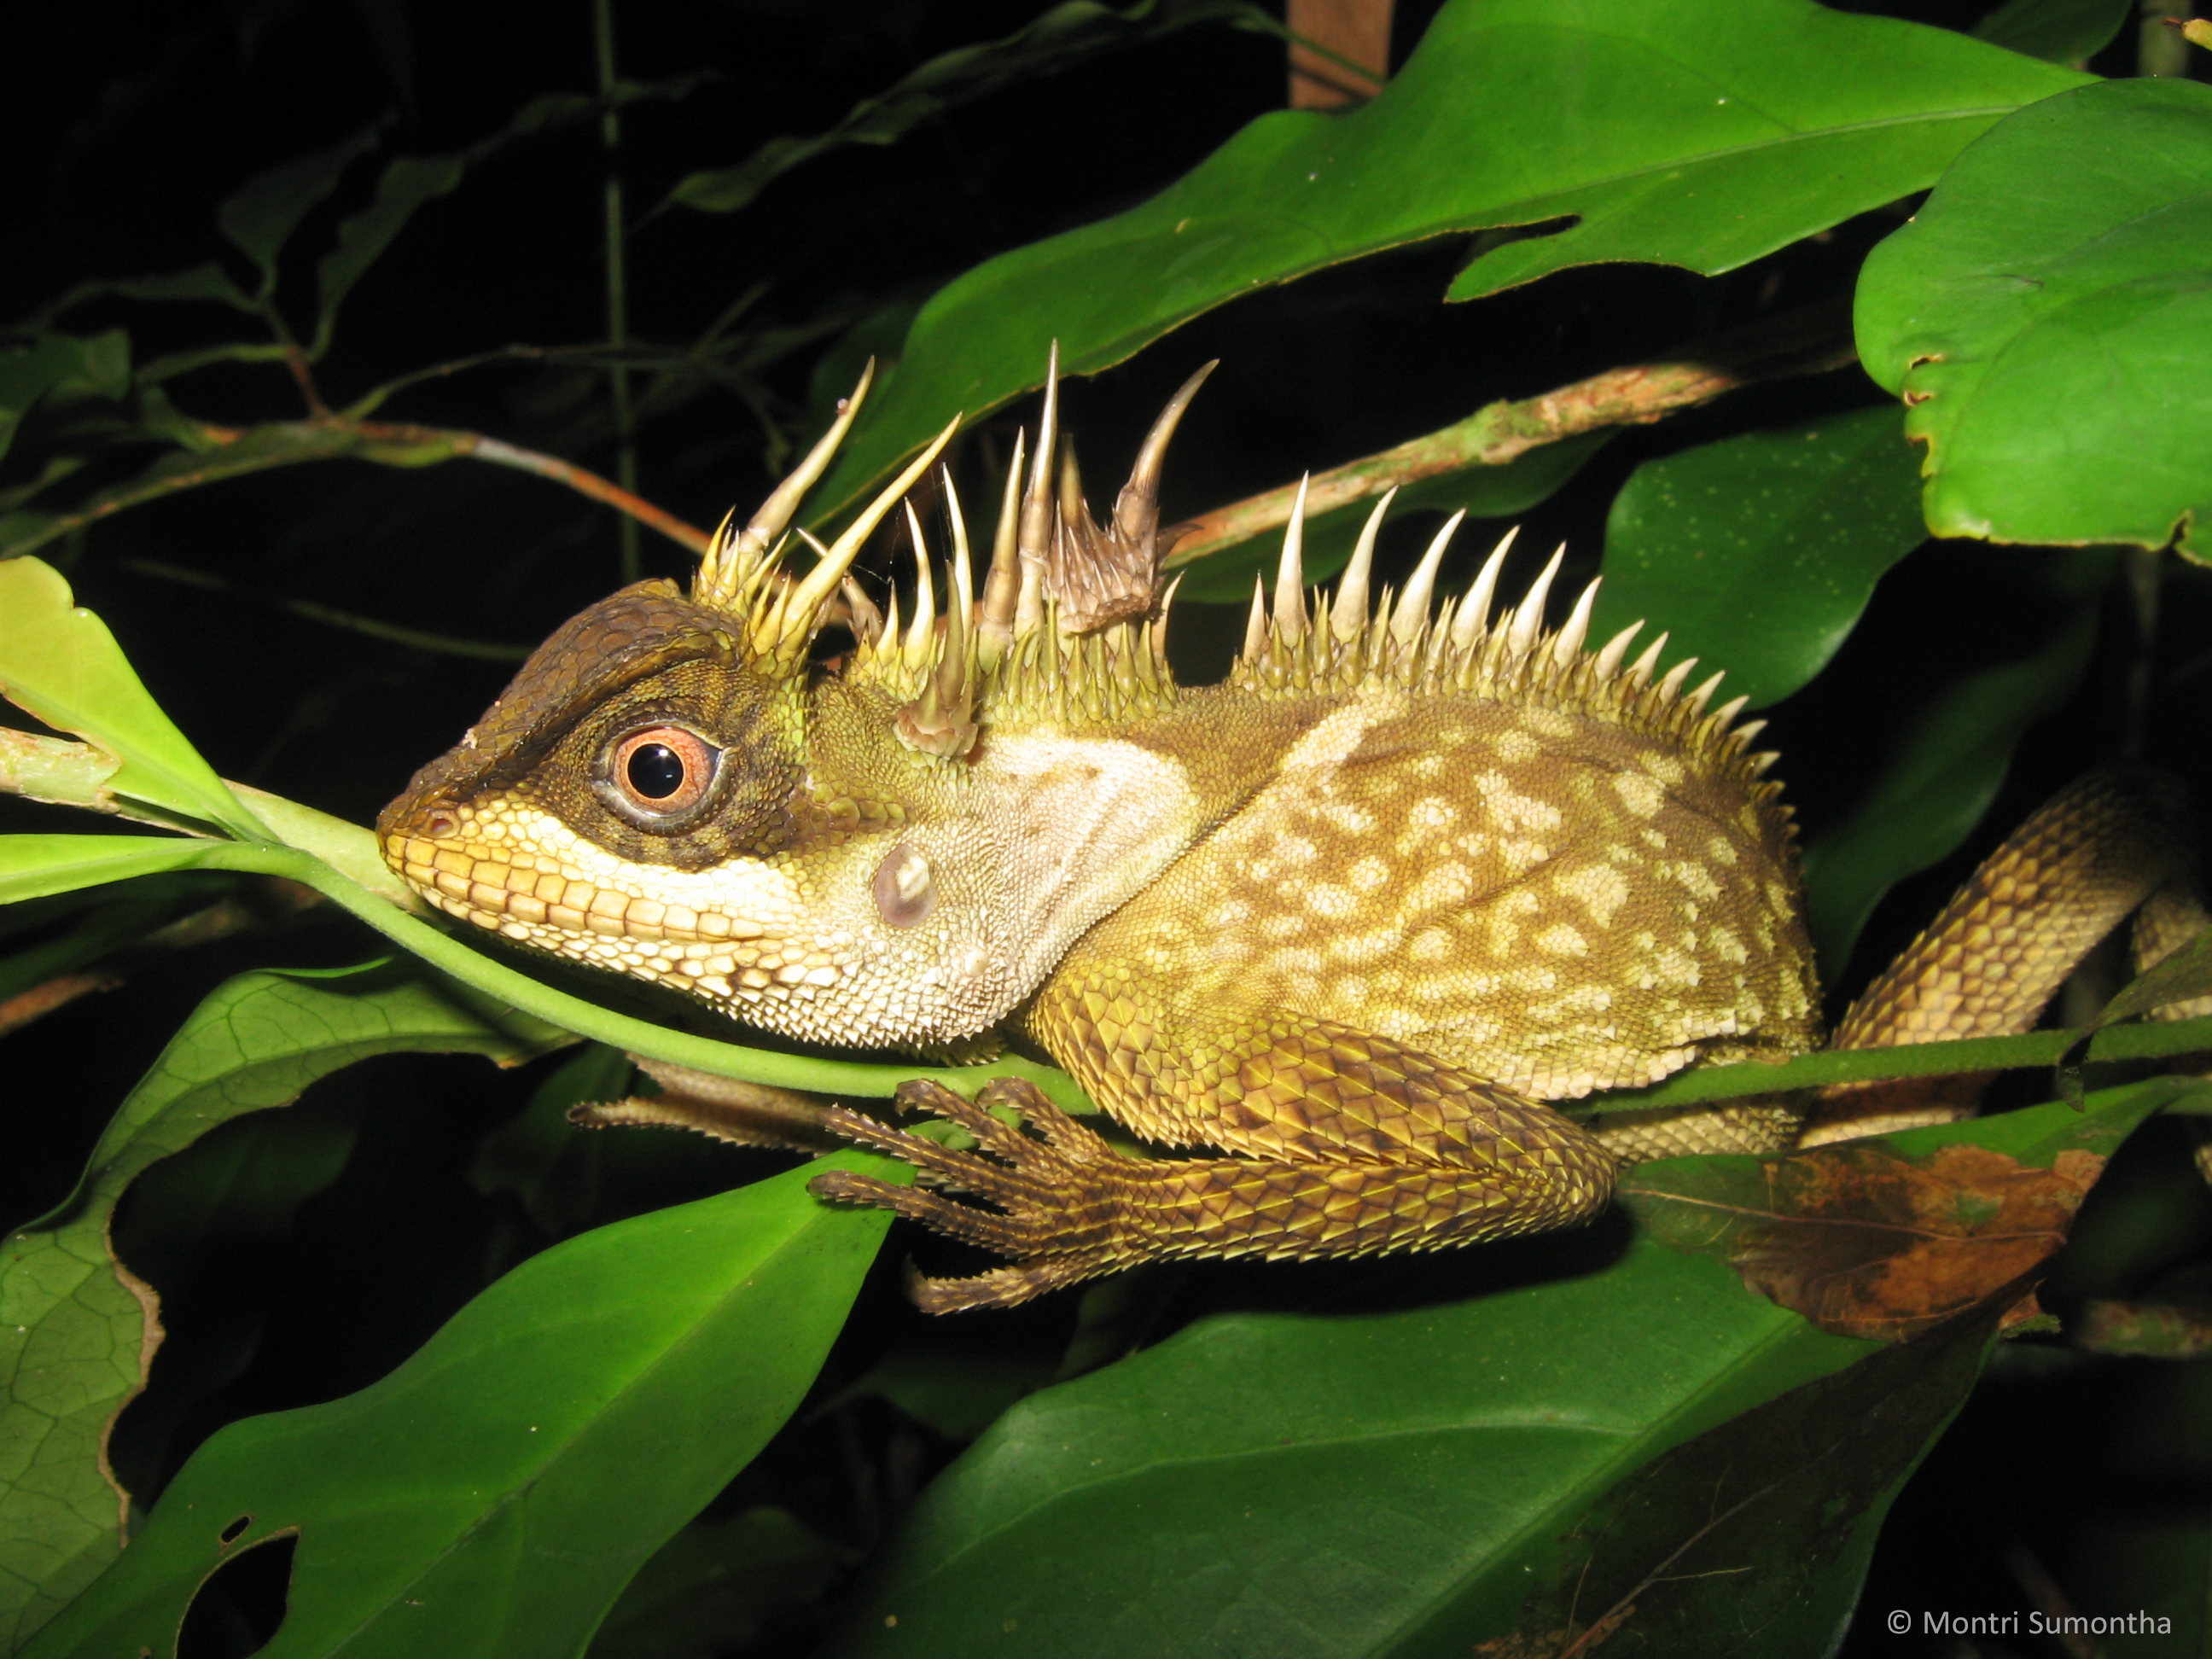 The Phuket Horned Tree Agamid has a weird assortment of horns on its body.